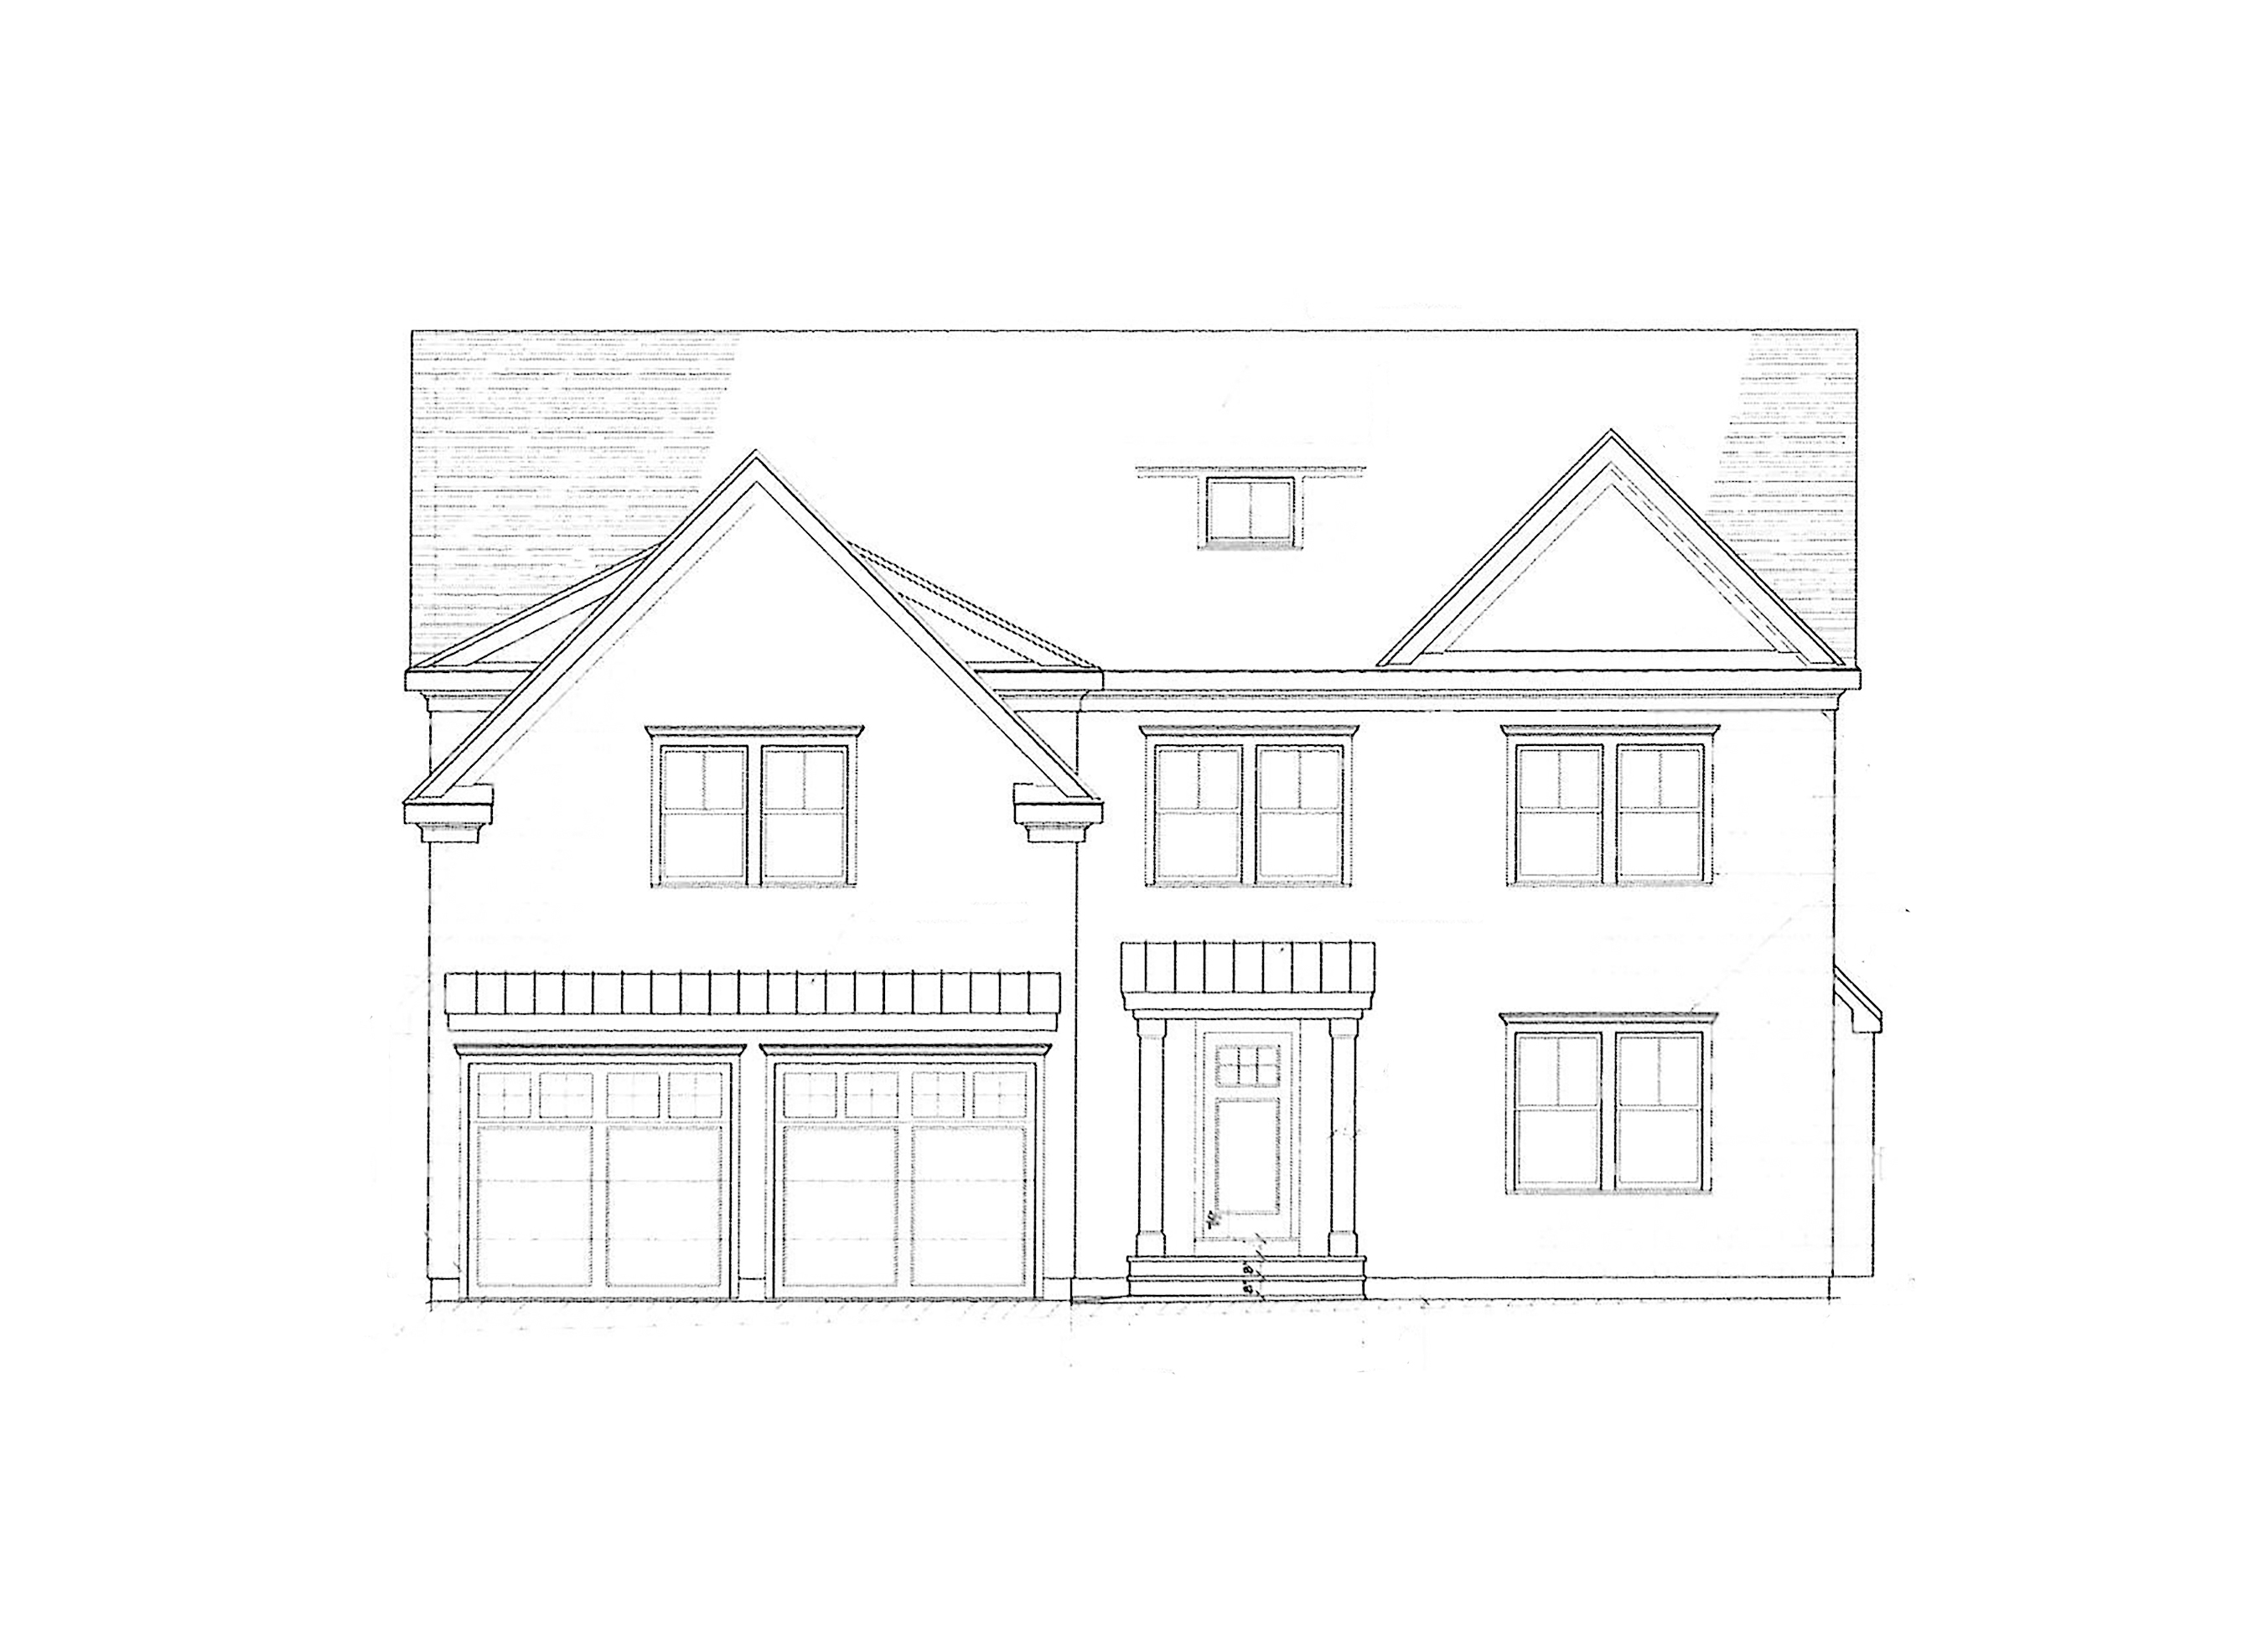 Single Family Home for Sale at New Construction 9 Colonial Road Westport, Connecticut, 06880 United States